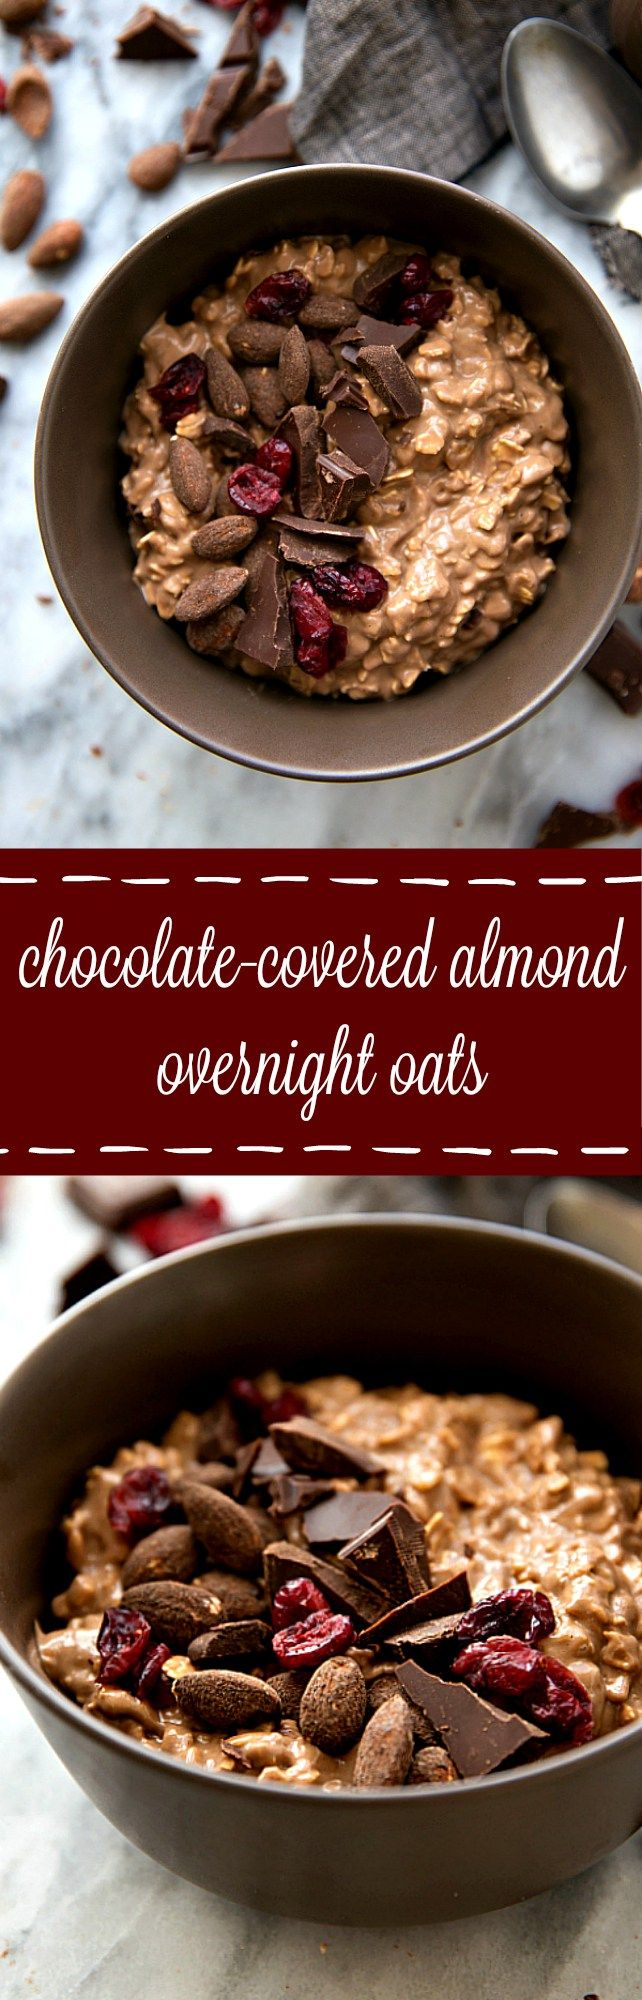 Best 20+ Chocolate covered almonds ideas on Pinterest | Healthy ...